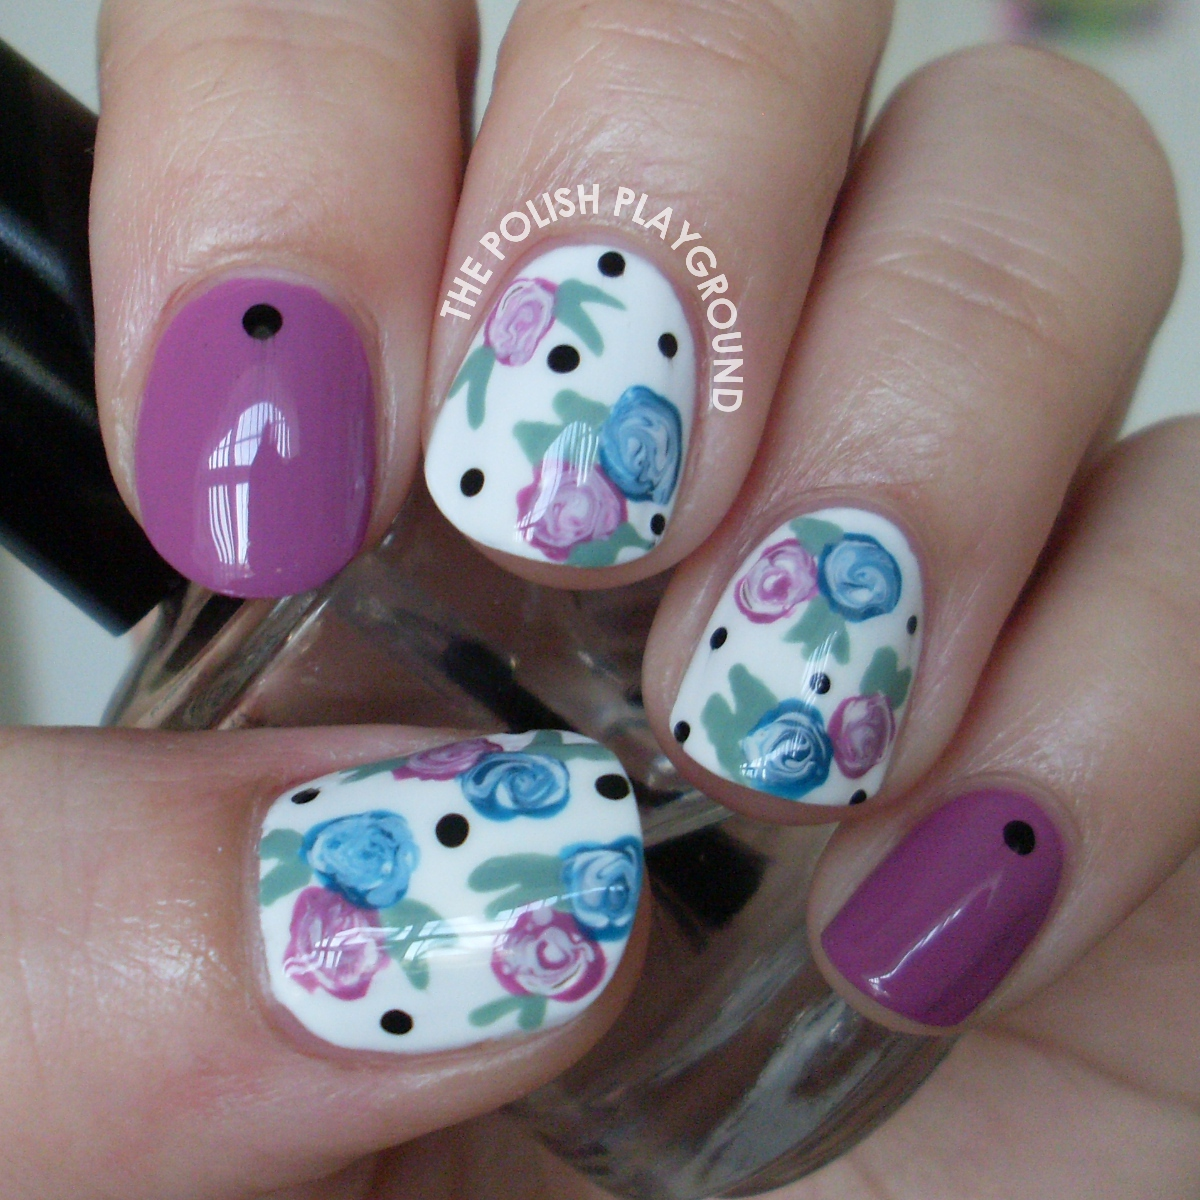 The Polish Playground: Easy Floral Nails